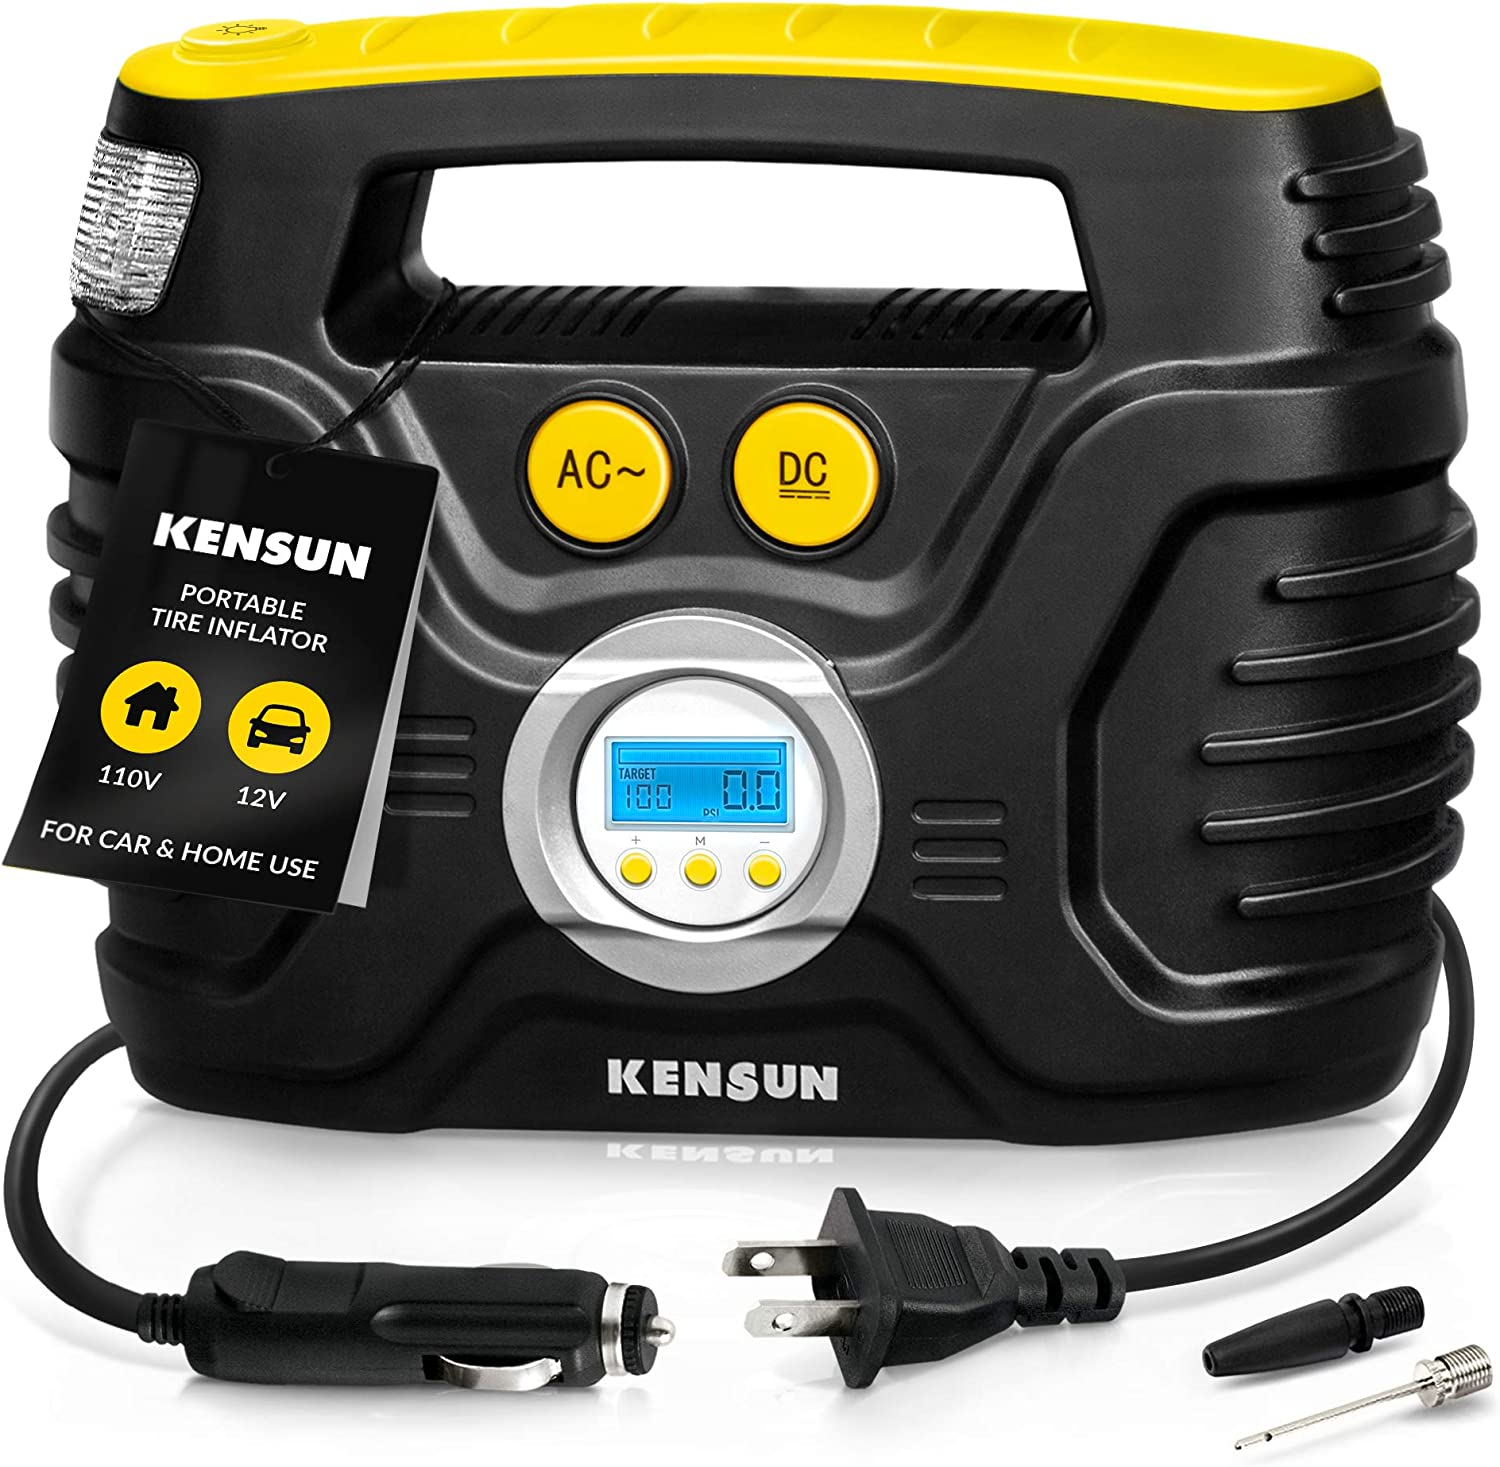 Kensun AC/DC Tire Inflator Pump for Car 12V DC and Home 110V AC Swift Performance 2.0 Portable Air Compressor Pump for Car and Home